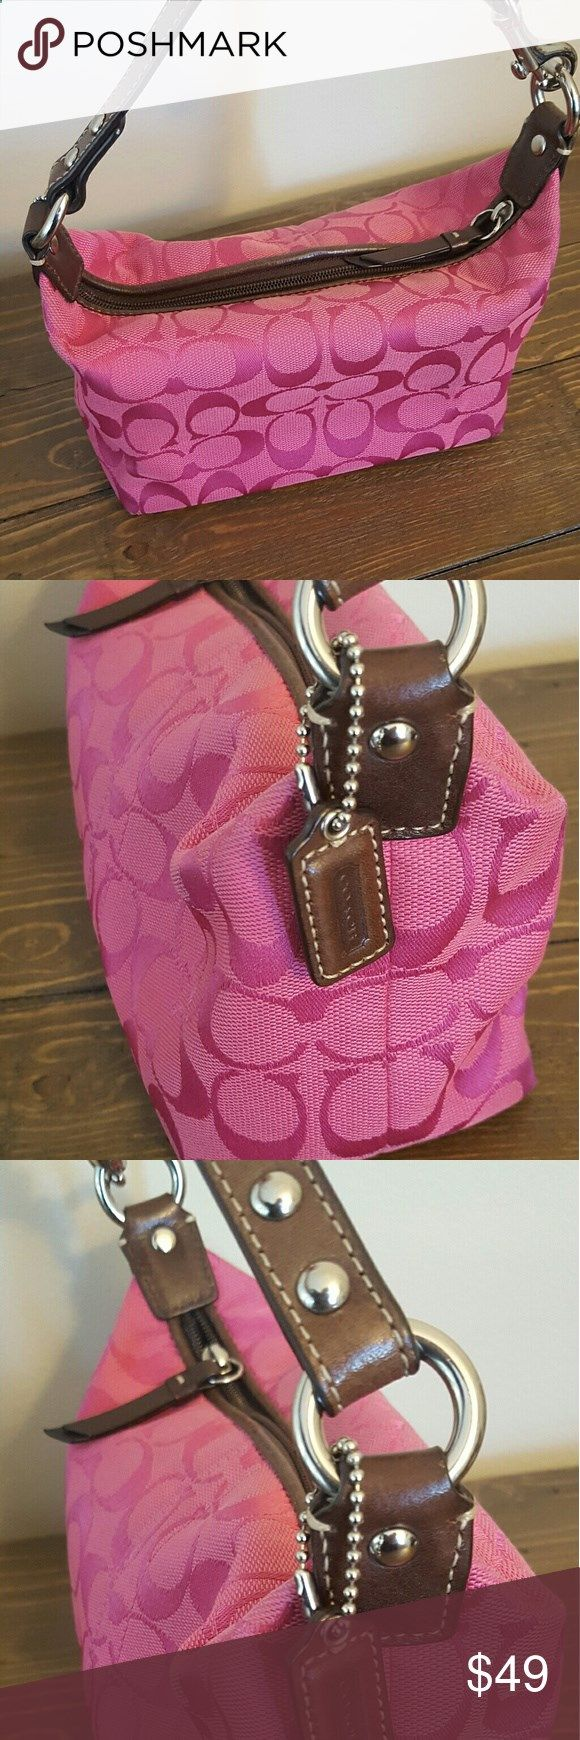 Pink Coach Purse Small shoulder purse. Good condition; minor scuffs on bottom as shown in picture. Coach Bags